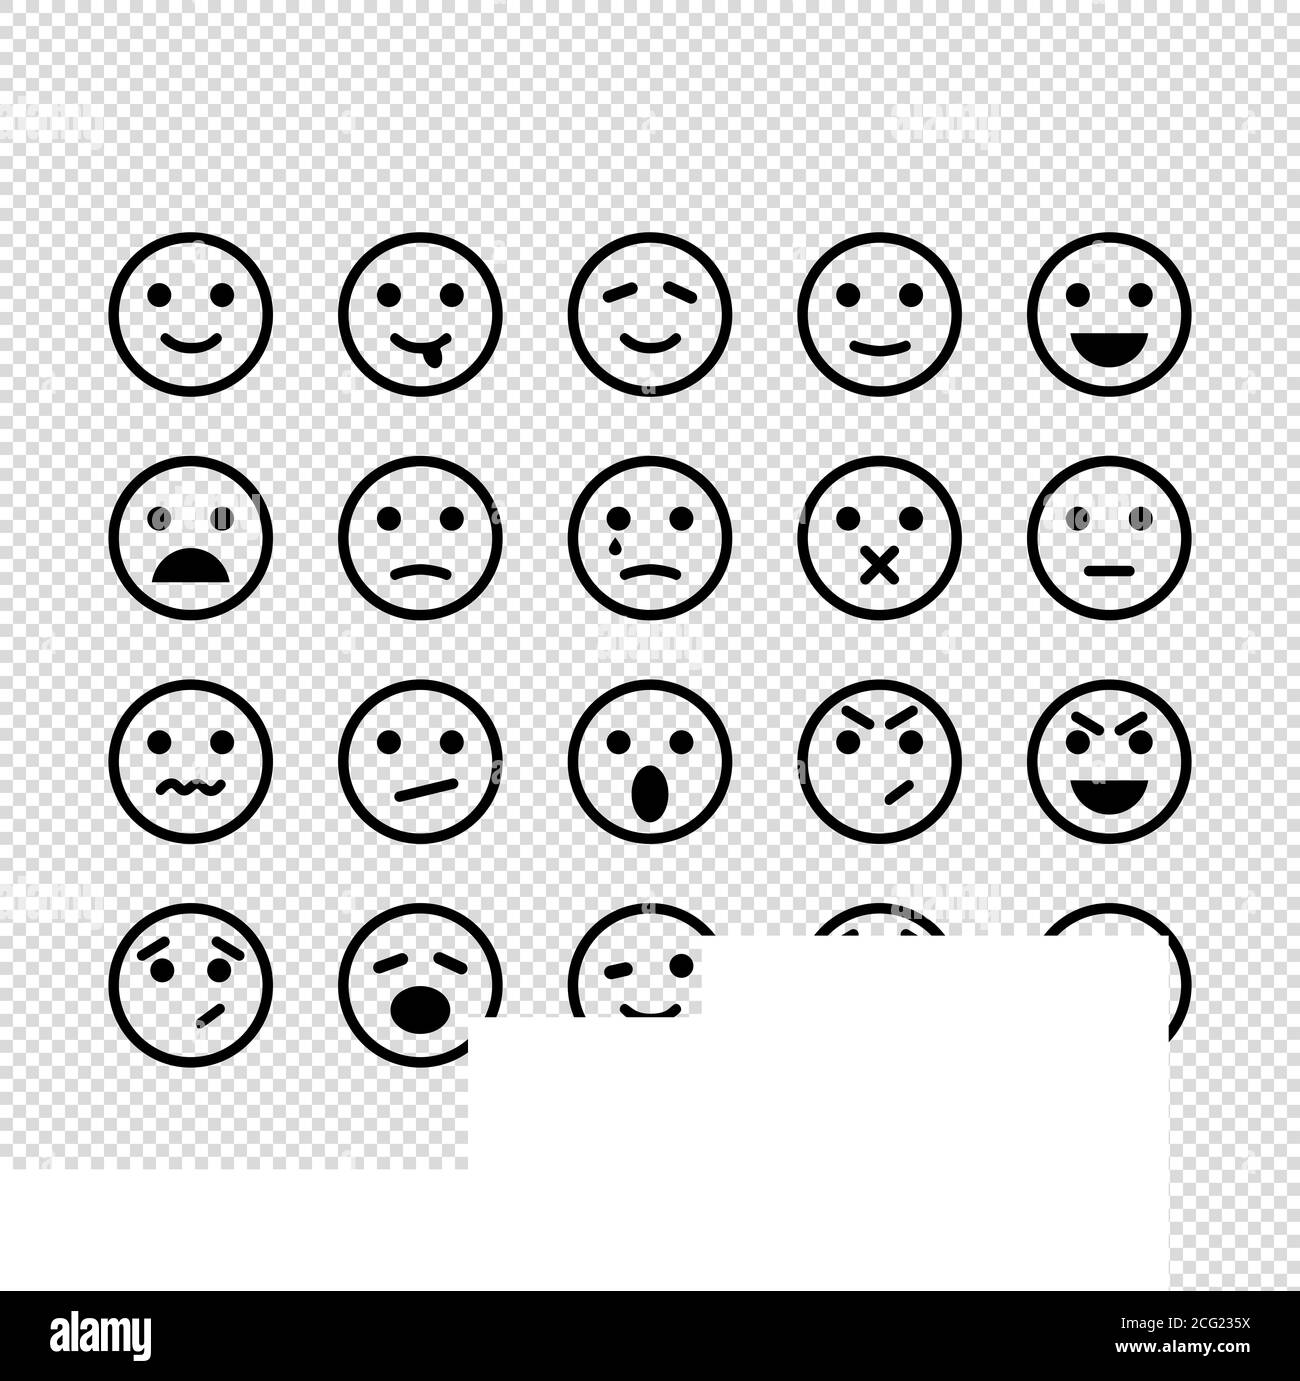 emotion icon set on transparent background collection emoji vector eps 10 stock vector image art alamy https www alamy com emotion icon set on transparent background collection emoji vector eps 10 image371298646 html